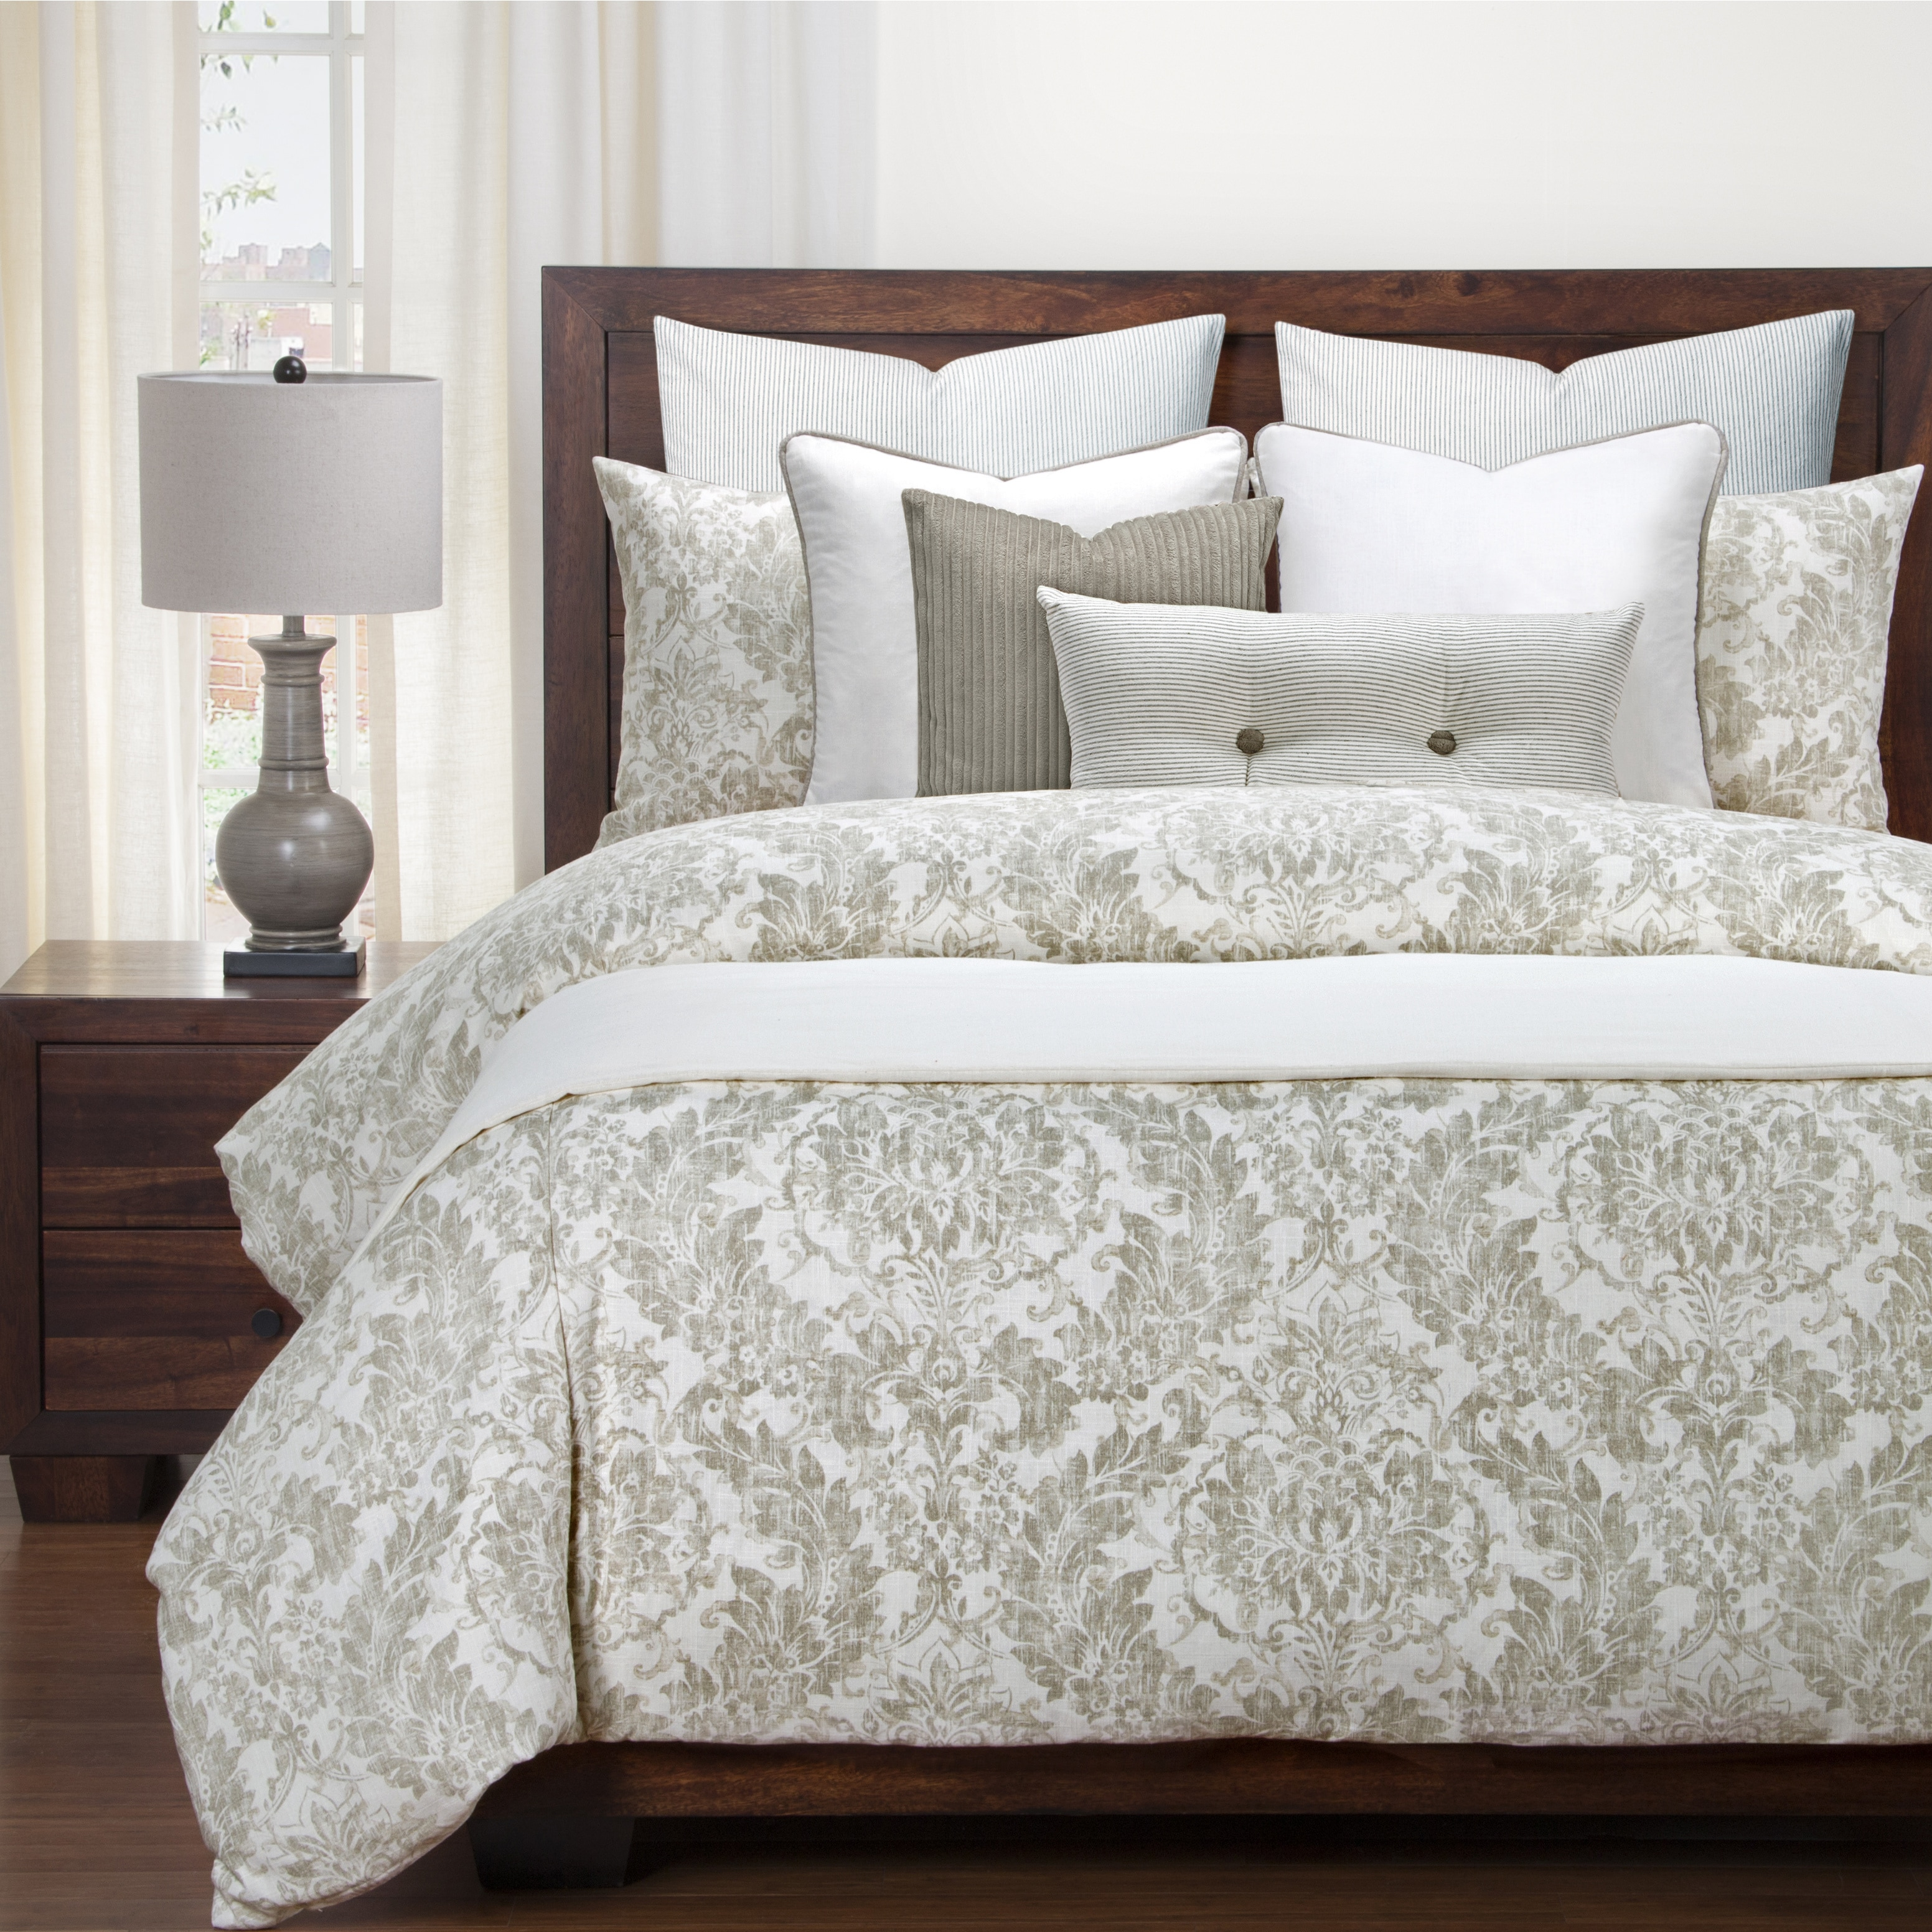 Duvet And Comforter Sets Siscovers Parlour Drift Luxury Linen Blend Duvet And Comforter Set